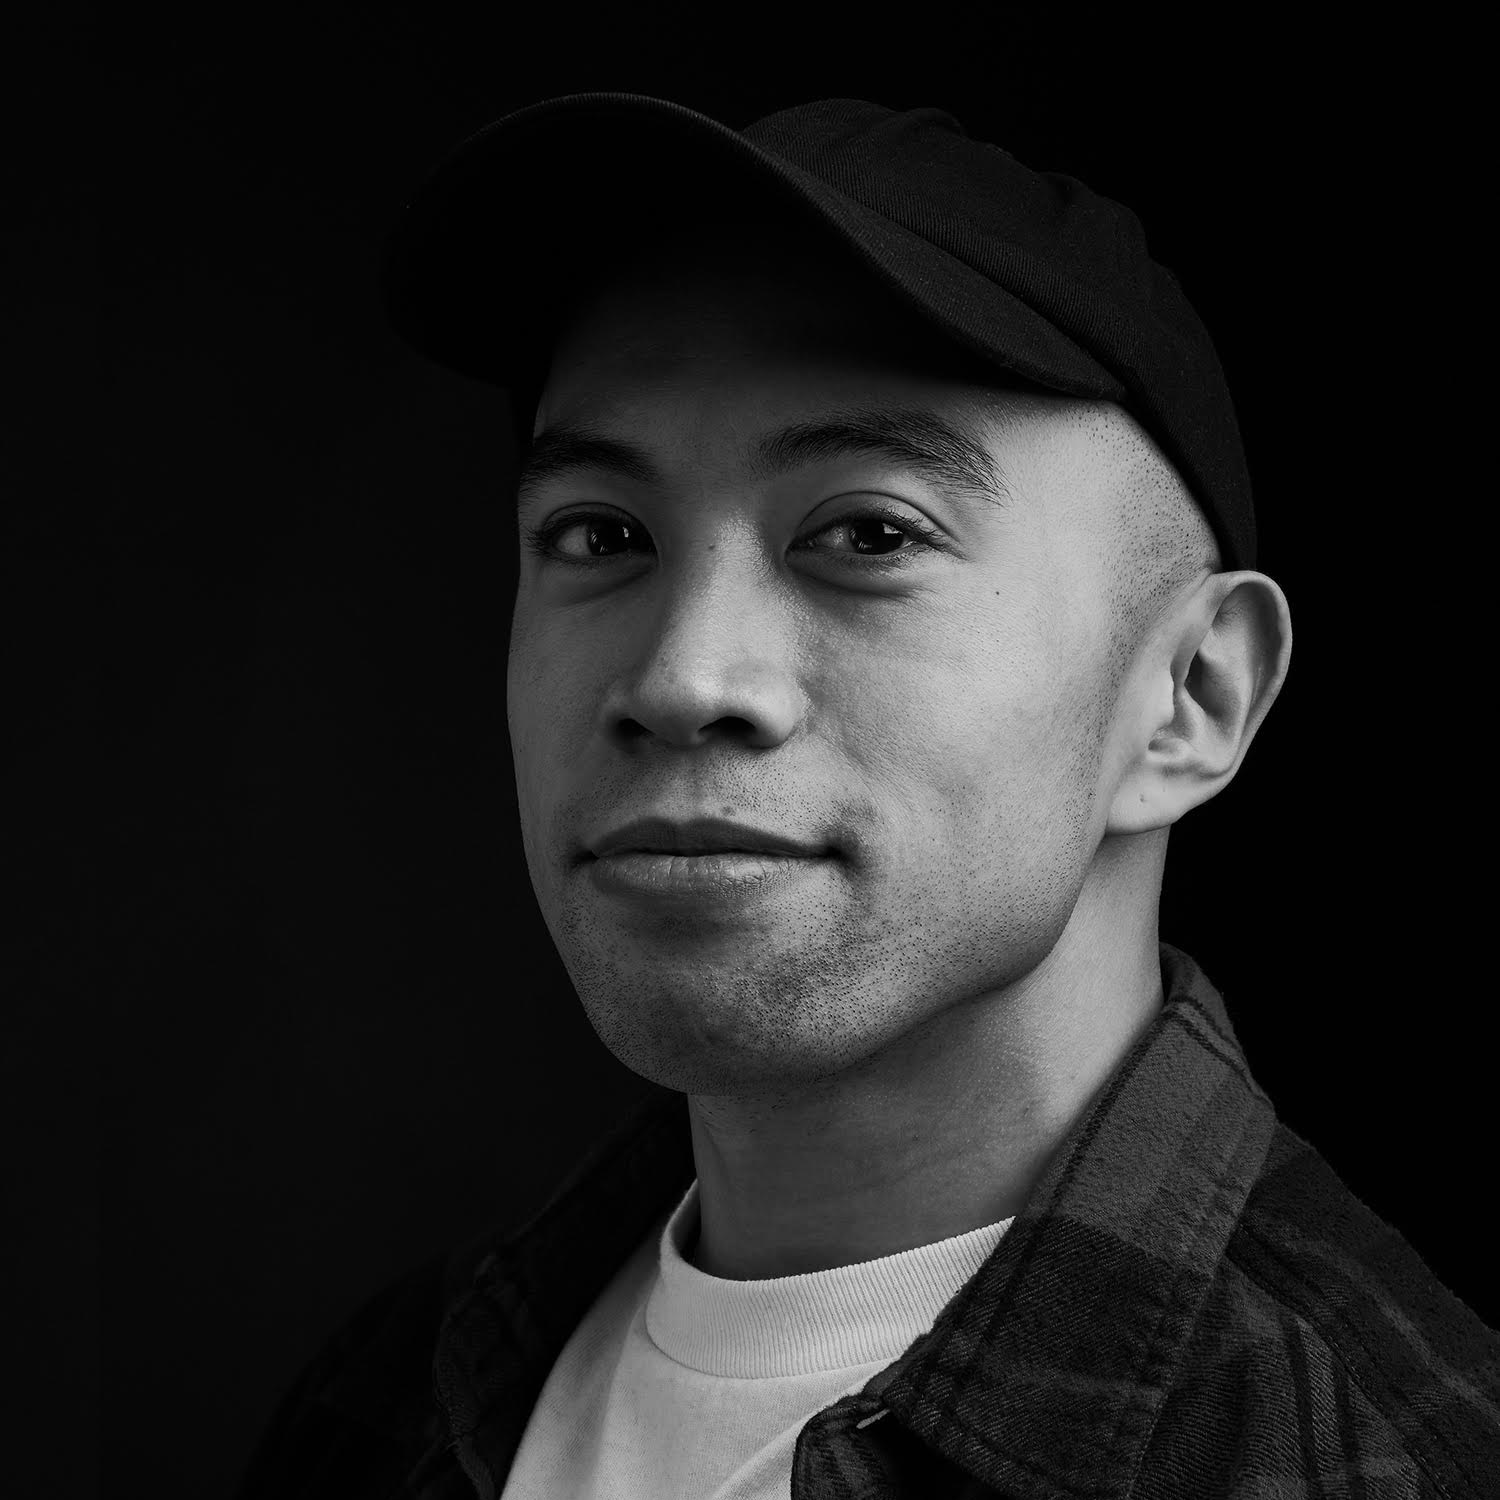 """Rich Tu is a VP of Design at MTV and a member of  AIGA NY's Board of Directors .  Rich is a first generation Filipino-American and award-winning artist residing in Brooklyn, NY. He is a graduate of SVA's prestigious Illustration as Visual Essay program and received the """"Young Guns"""" award from the Art Directors Club, which recognizes the world's best creatives under the age of 30. Creatively, his focus is on emerging audiences and energetic brands that benefit from an eclectic and unique point of view.  Commercially, Rich's clients include The New York Times, The New Yorker, Business Week, Alfa Romeo, Bombay Sapphire, G-Shock, Nike, Converse, American Express, NPR, NorthFace Purple Label, Coca-Cola, Verizon, Skype, Fuse TV, and Hamilton The Musical, among others. Also, he has exhibited at galleries and festivals in New York, Los Angeles, Berlin, as well as the SCOPE Miami festival, during Miami's Art Basel week.  Additionally, he hosts a podcast called  First Generation Burden , about immigrants within the creative industry."""